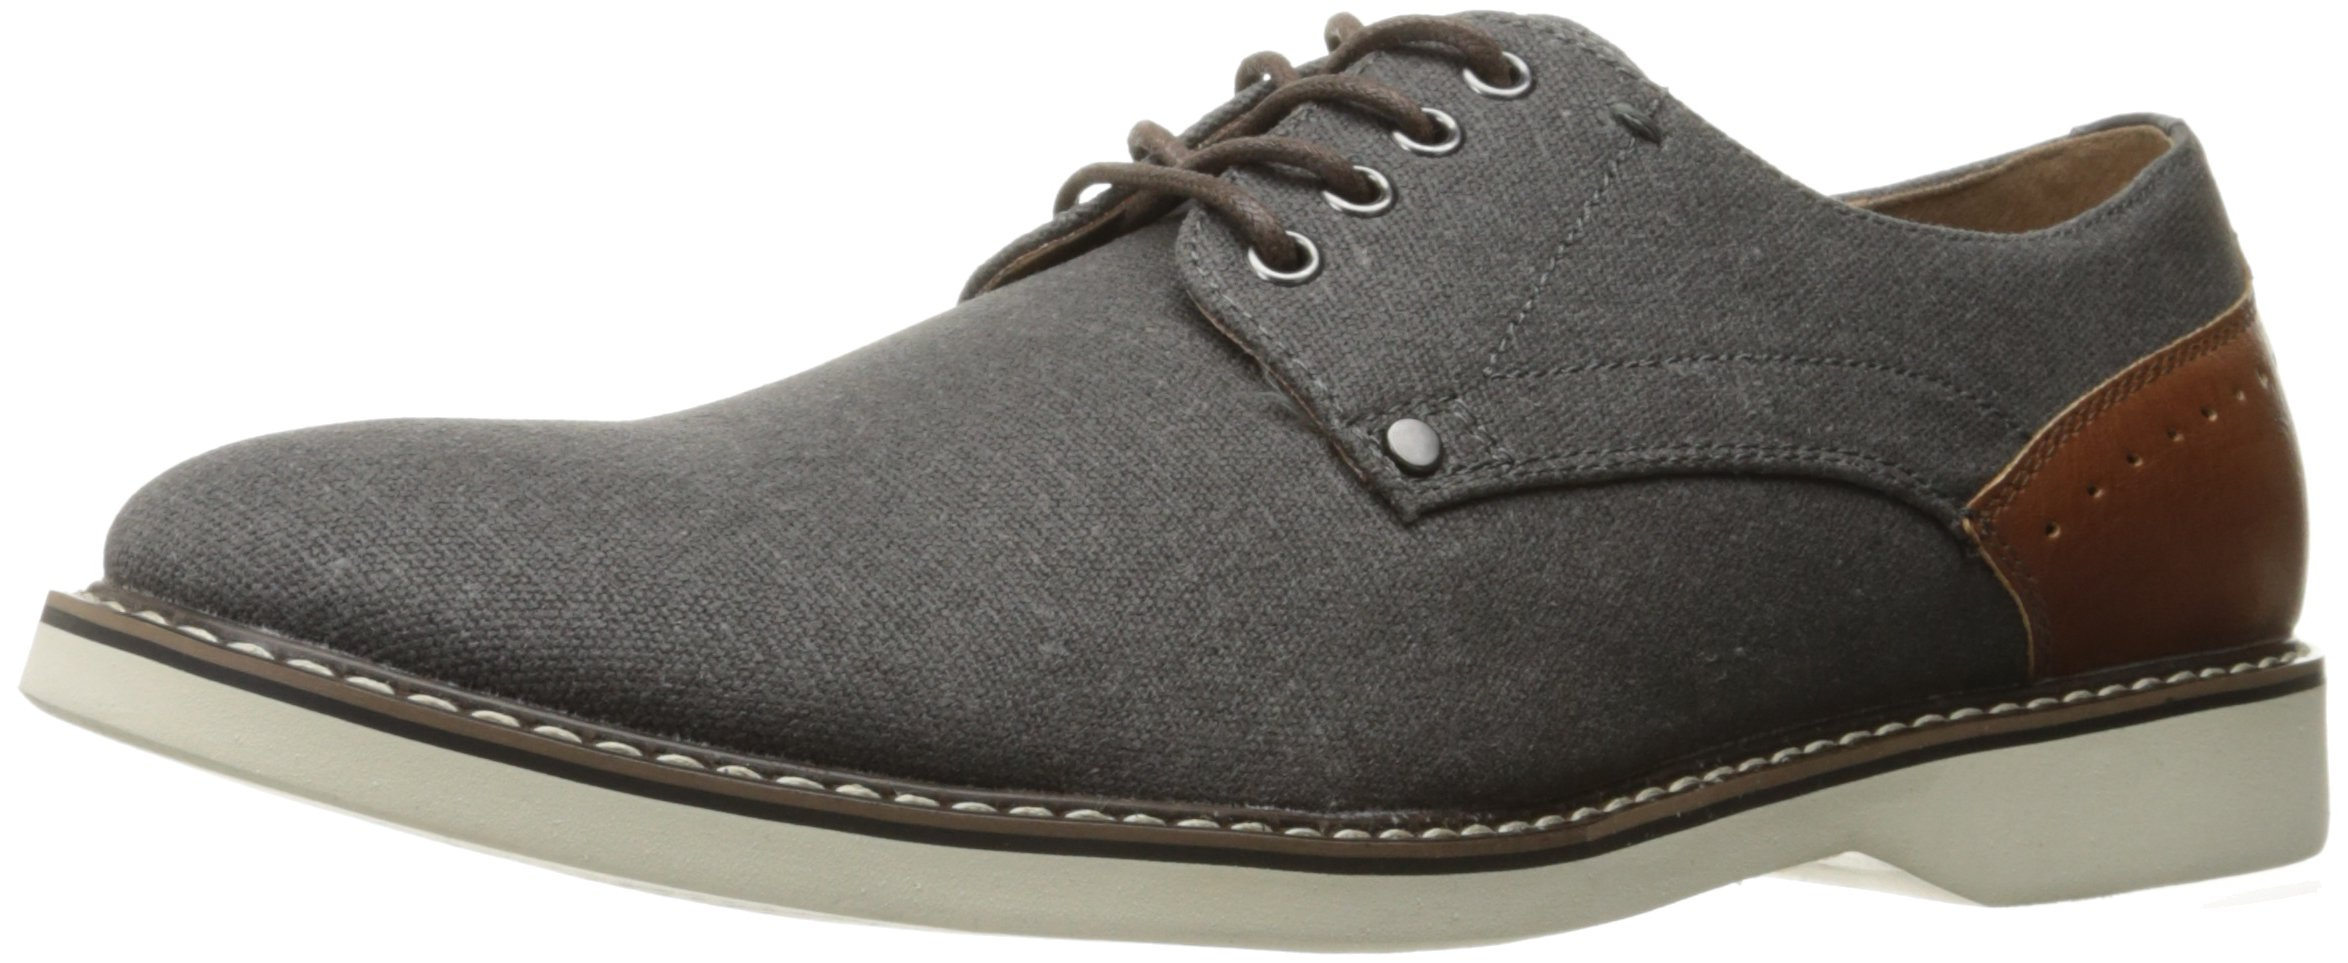 Madden Men's M-Drudge Oxford, Grey Fabric, 9.5 M US